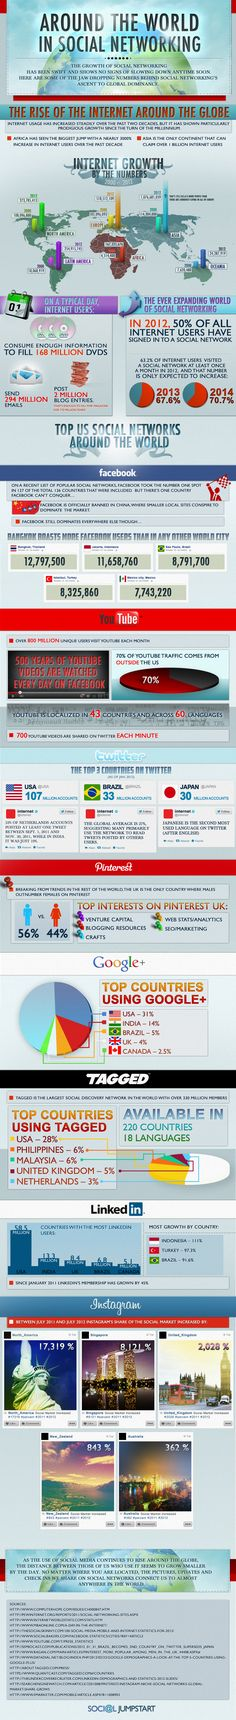 How the World Consumes Social Media Social media is trending globally. Check out this infographic to learn about how quickly social media has become prominent around the world. 'Around the world in social networking' by Social Jumpstart and Hasai Social Marketing, Inbound Marketing, Marketing Digital, Marketing Trends, Content Marketing, Internet Marketing, Online Marketing, Internet Usage, Social Media Tips